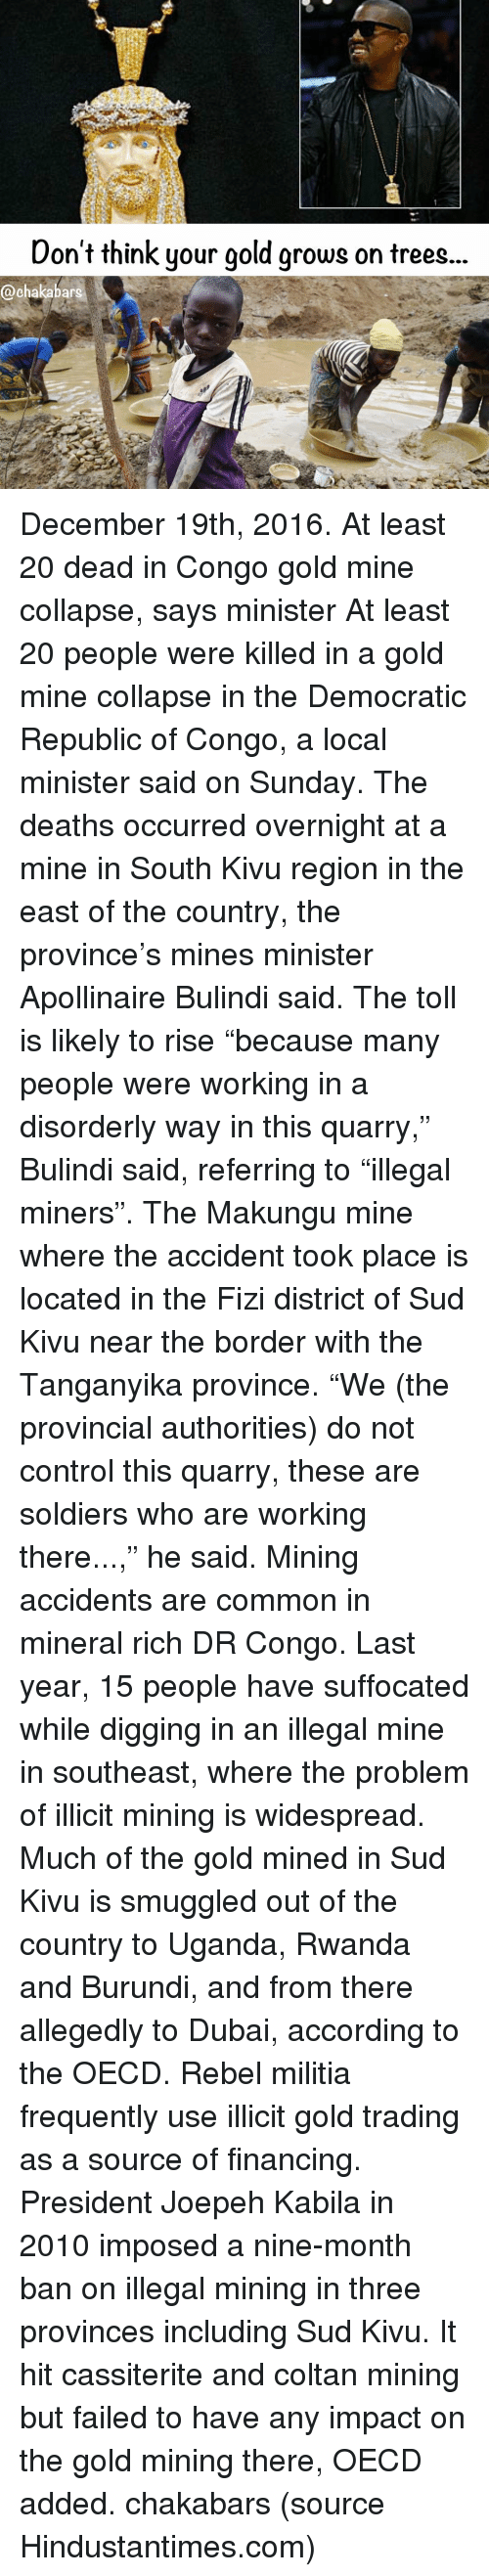 """Fail, Finance, and Memes: Don't think your gold grows on trees.  @chakabars December 19th, 2016. At least 20 dead in Congo gold mine collapse, says minister At least 20 people were killed in a gold mine collapse in the Democratic Republic of Congo, a local minister said on Sunday. The deaths occurred overnight at a mine in South Kivu region in the east of the country, the province's mines minister Apollinaire Bulindi said. The toll is likely to rise """"because many people were working in a disorderly way in this quarry,"""" Bulindi said, referring to """"illegal miners"""". The Makungu mine where the accident took place is located in the Fizi district of Sud Kivu near the border with the Tanganyika province. """"We (the provincial authorities) do not control this quarry, these are soldiers who are working there...,"""" he said. Mining accidents are common in mineral rich DR Congo. Last year, 15 people have suffocated while digging in an illegal mine in southeast, where the problem of illicit mining is widespread. Much of the gold mined in Sud Kivu is smuggled out of the country to Uganda, Rwanda and Burundi, and from there allegedly to Dubai, according to the OECD. Rebel militia frequently use illicit gold trading as a source of financing. President Joepeh Kabila in 2010 imposed a nine-month ban on illegal mining in three provinces including Sud Kivu. It hit cassiterite and coltan mining but failed to have any impact on the gold mining there, OECD added. chakabars (source Hindustantimes.com)"""